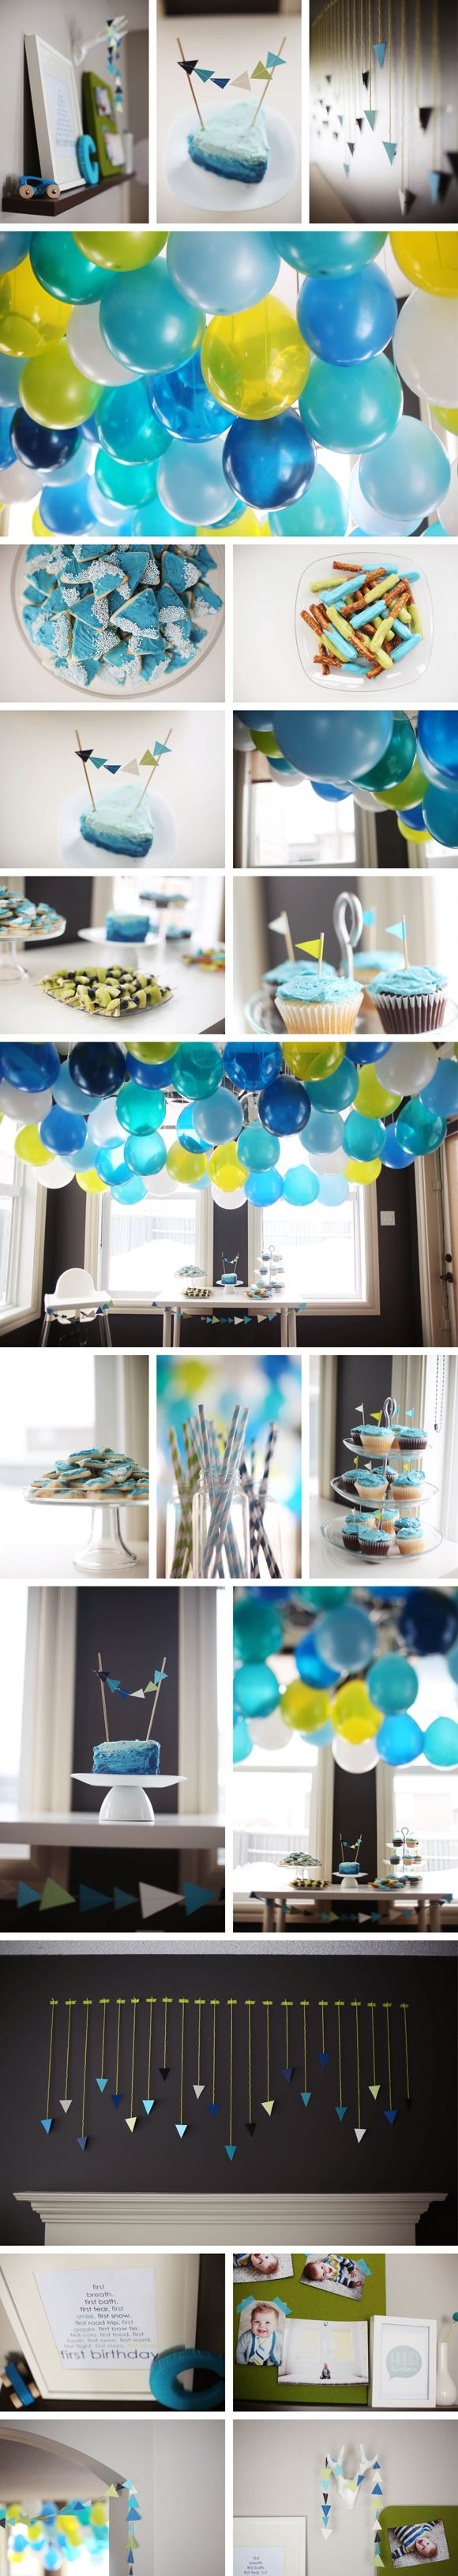 Cole's awesome first birthday party! Love every detail.